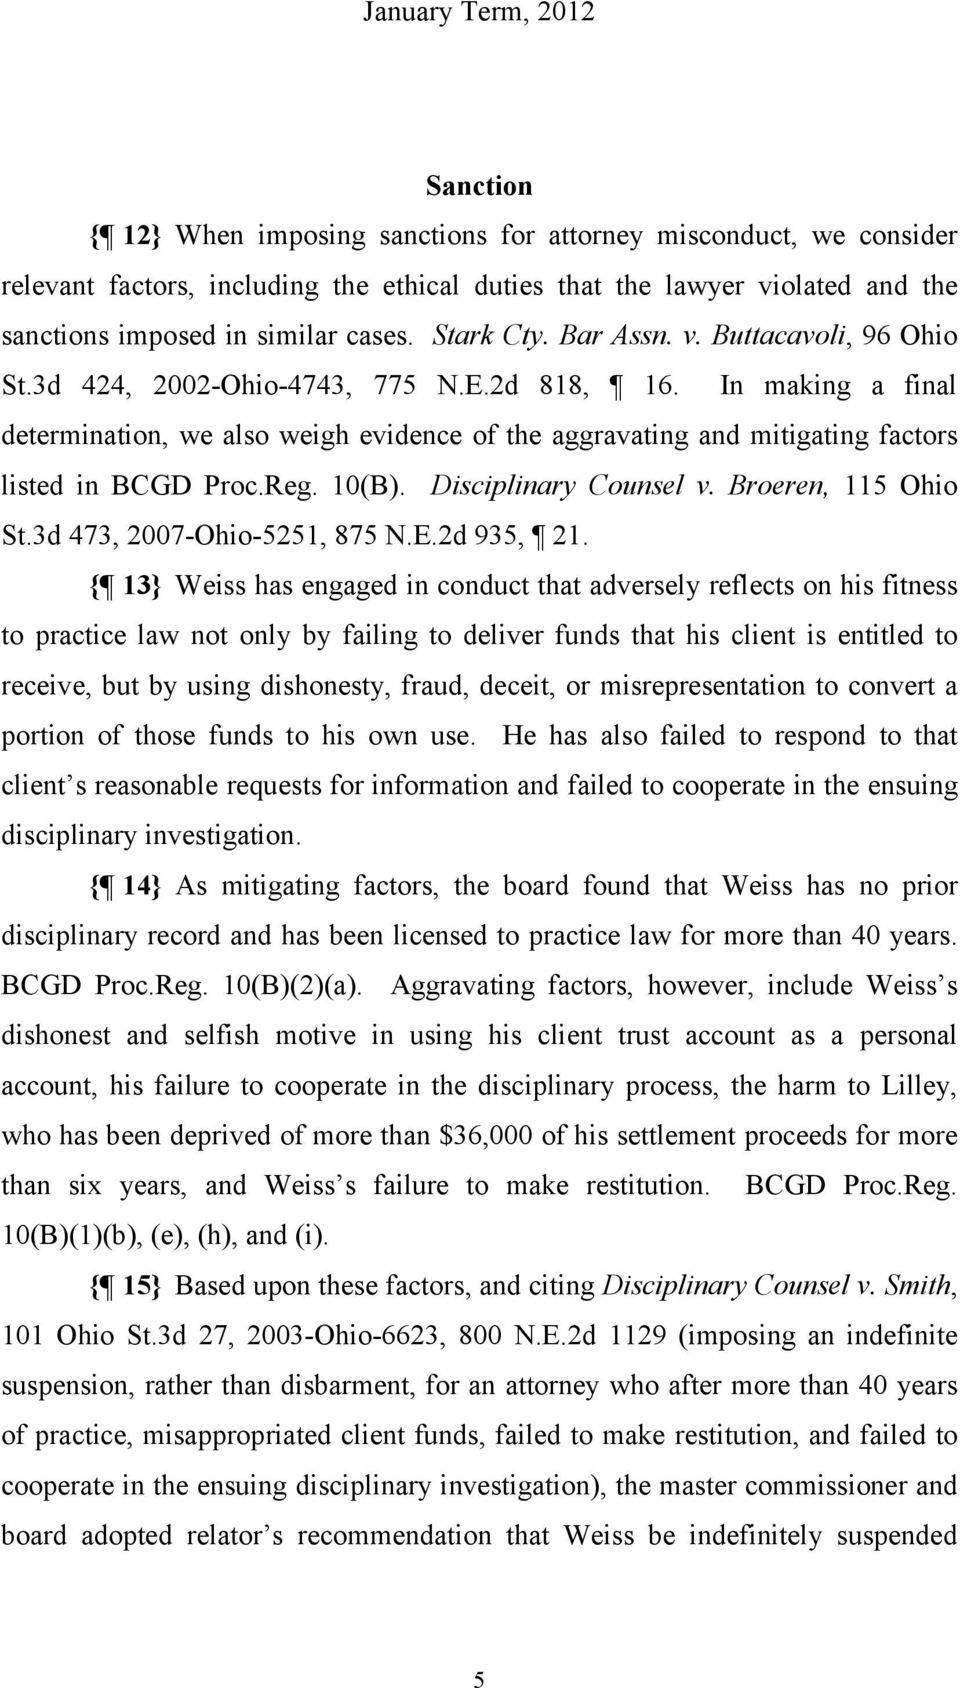 In making a final determination, we also weigh evidence of the aggravating and mitigating factors listed in BCGD Proc.Reg. 10(B). Disciplinary Counsel v. Broeren, 115 Ohio St.